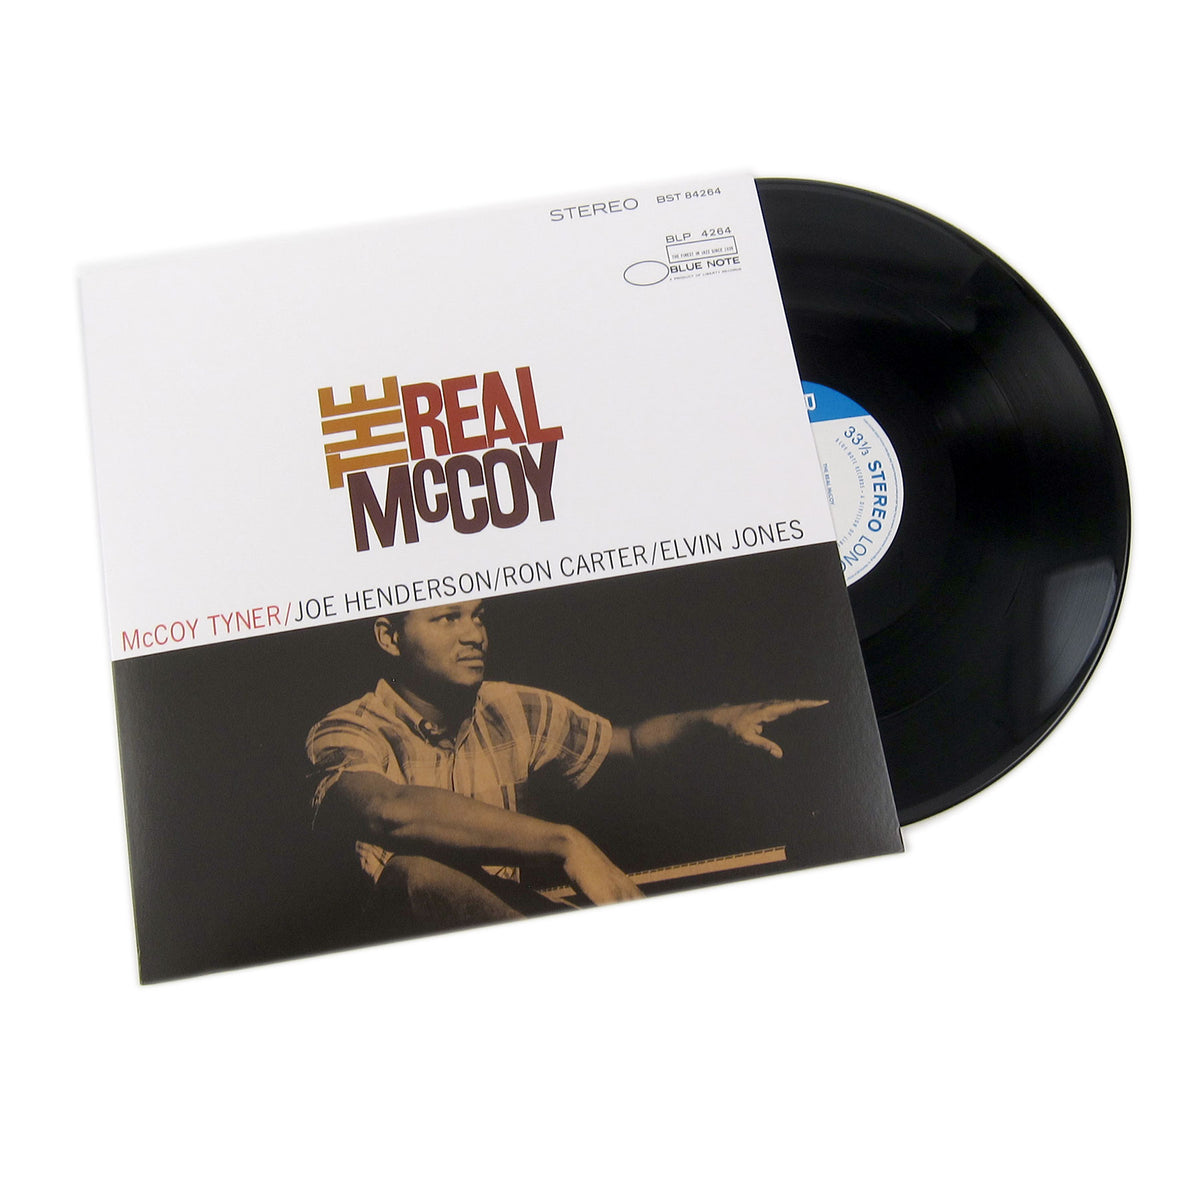 McCoy Tyner: The Real McCoy (180g) Vinyl